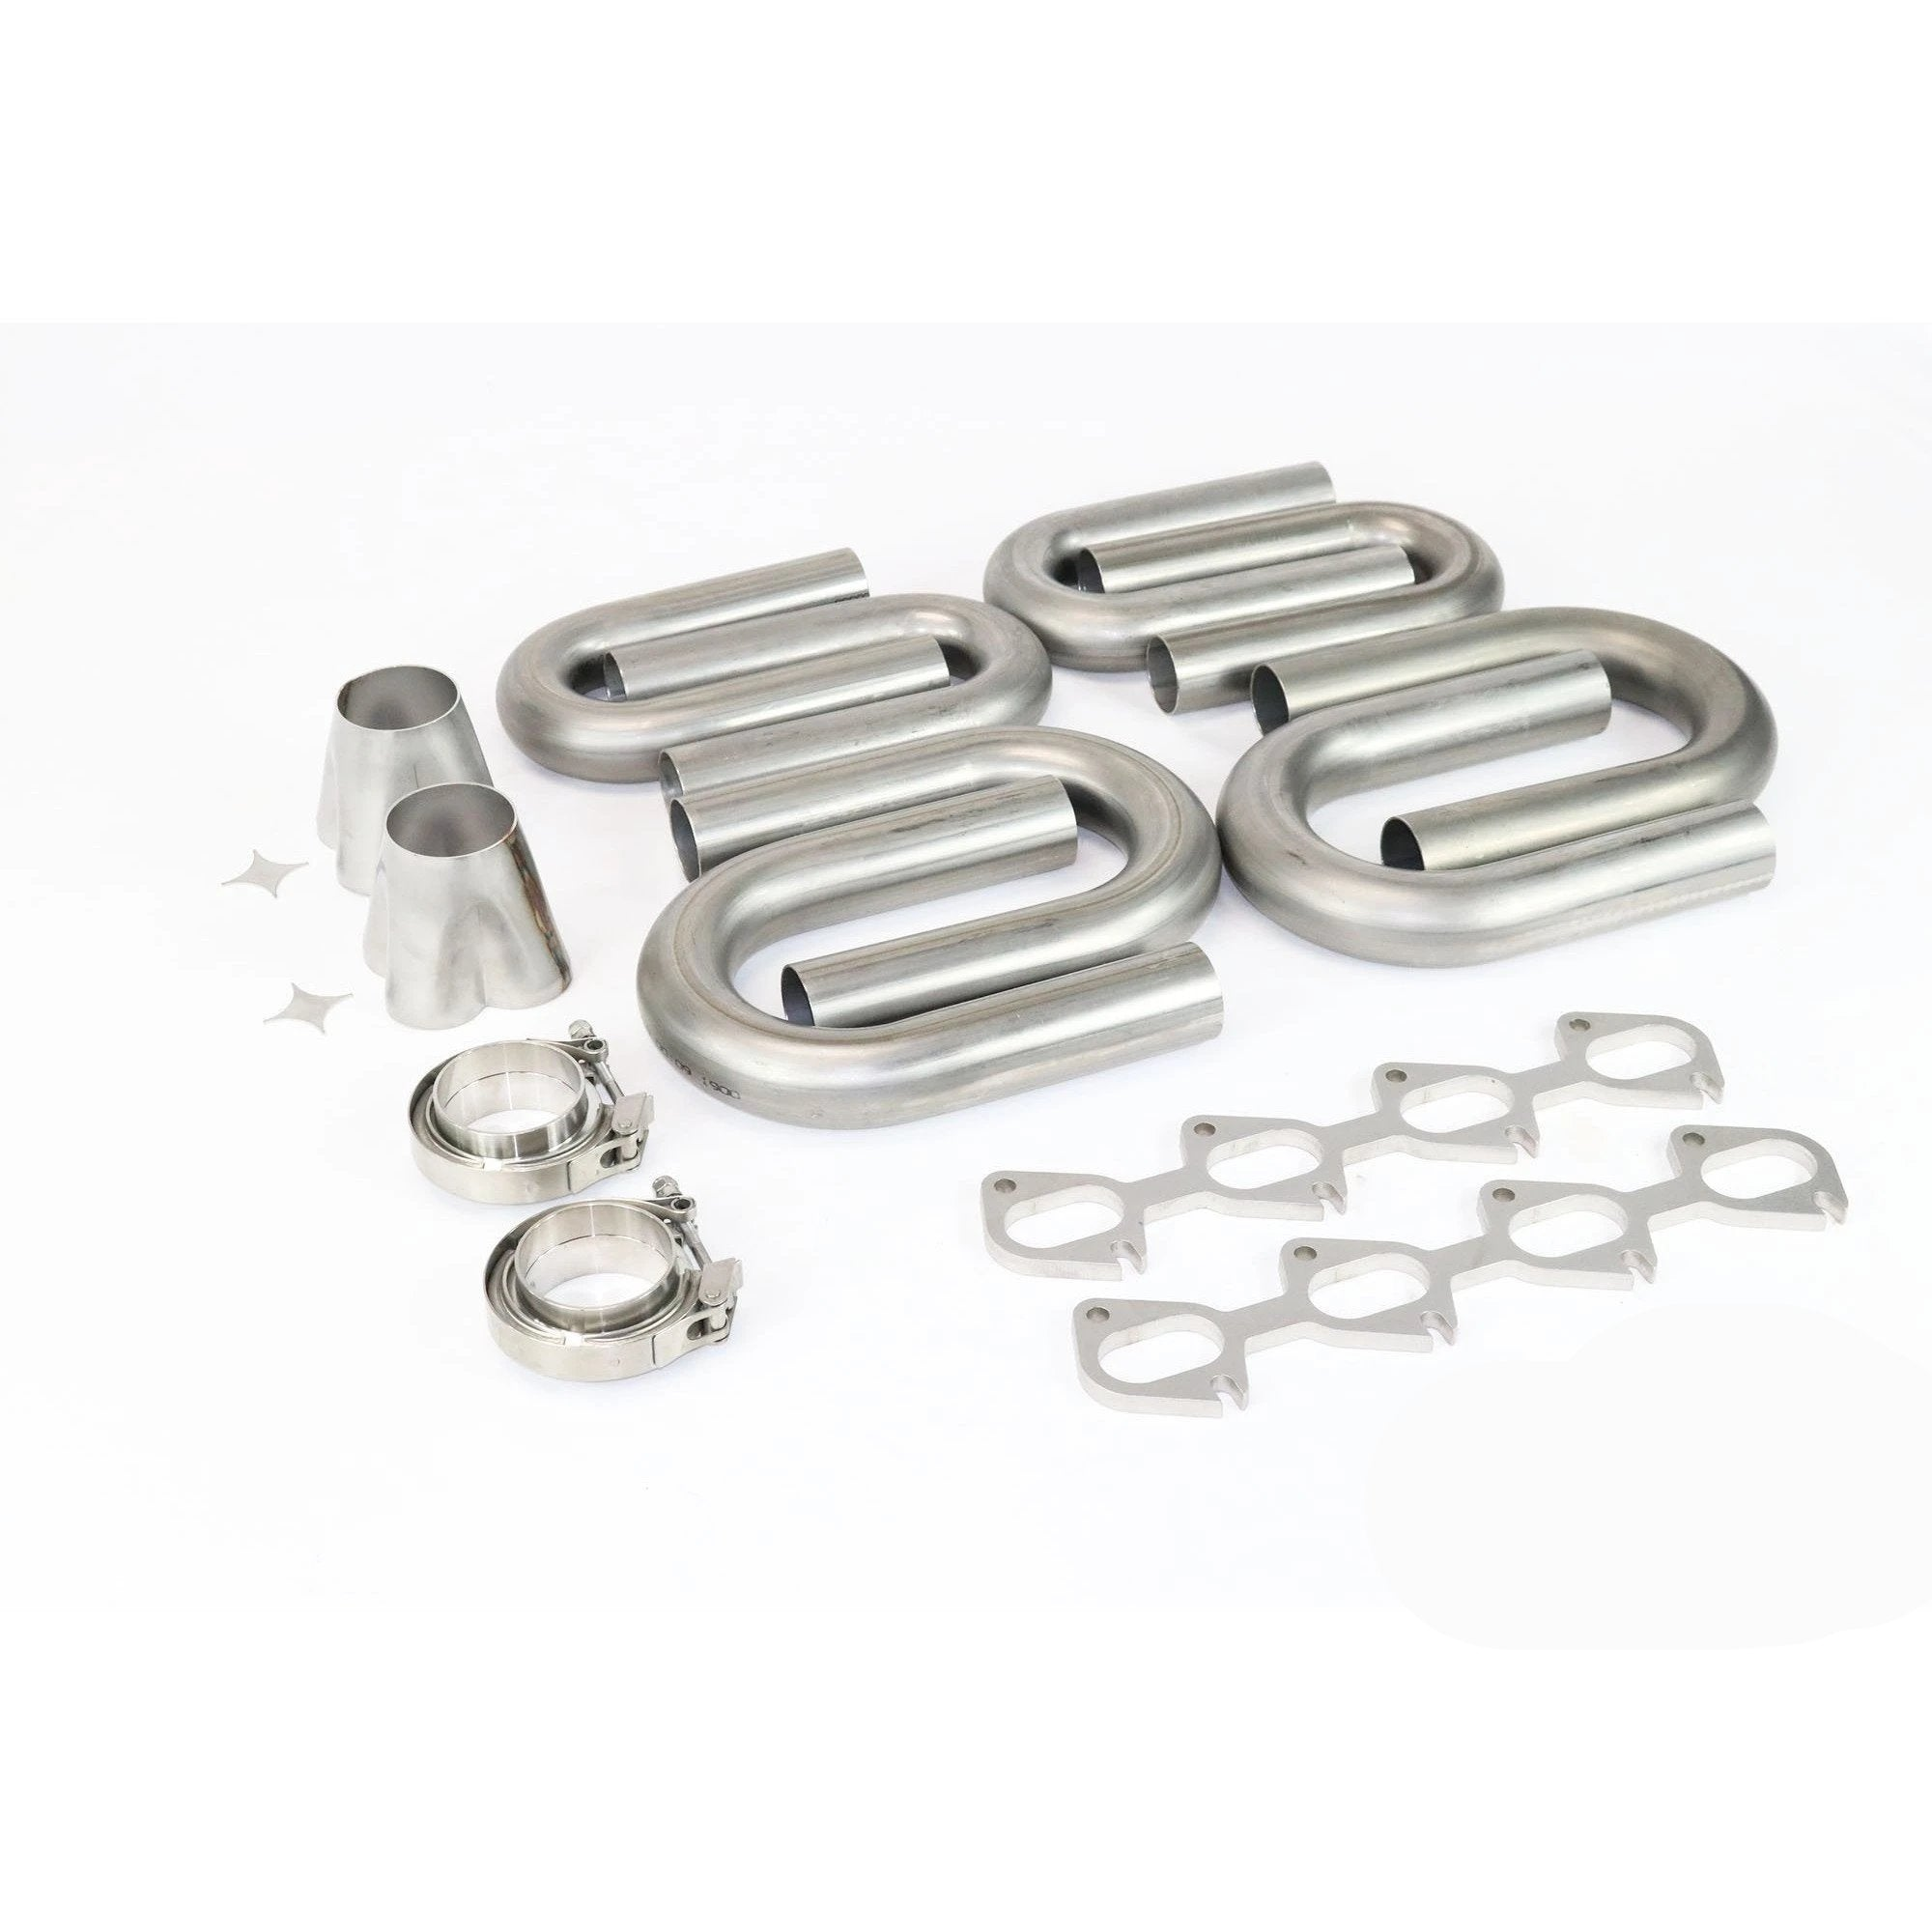 Ford Modular 4V 4.6 5.4 304 Stainless Turbo Header Build Kit - Motion Raceworks